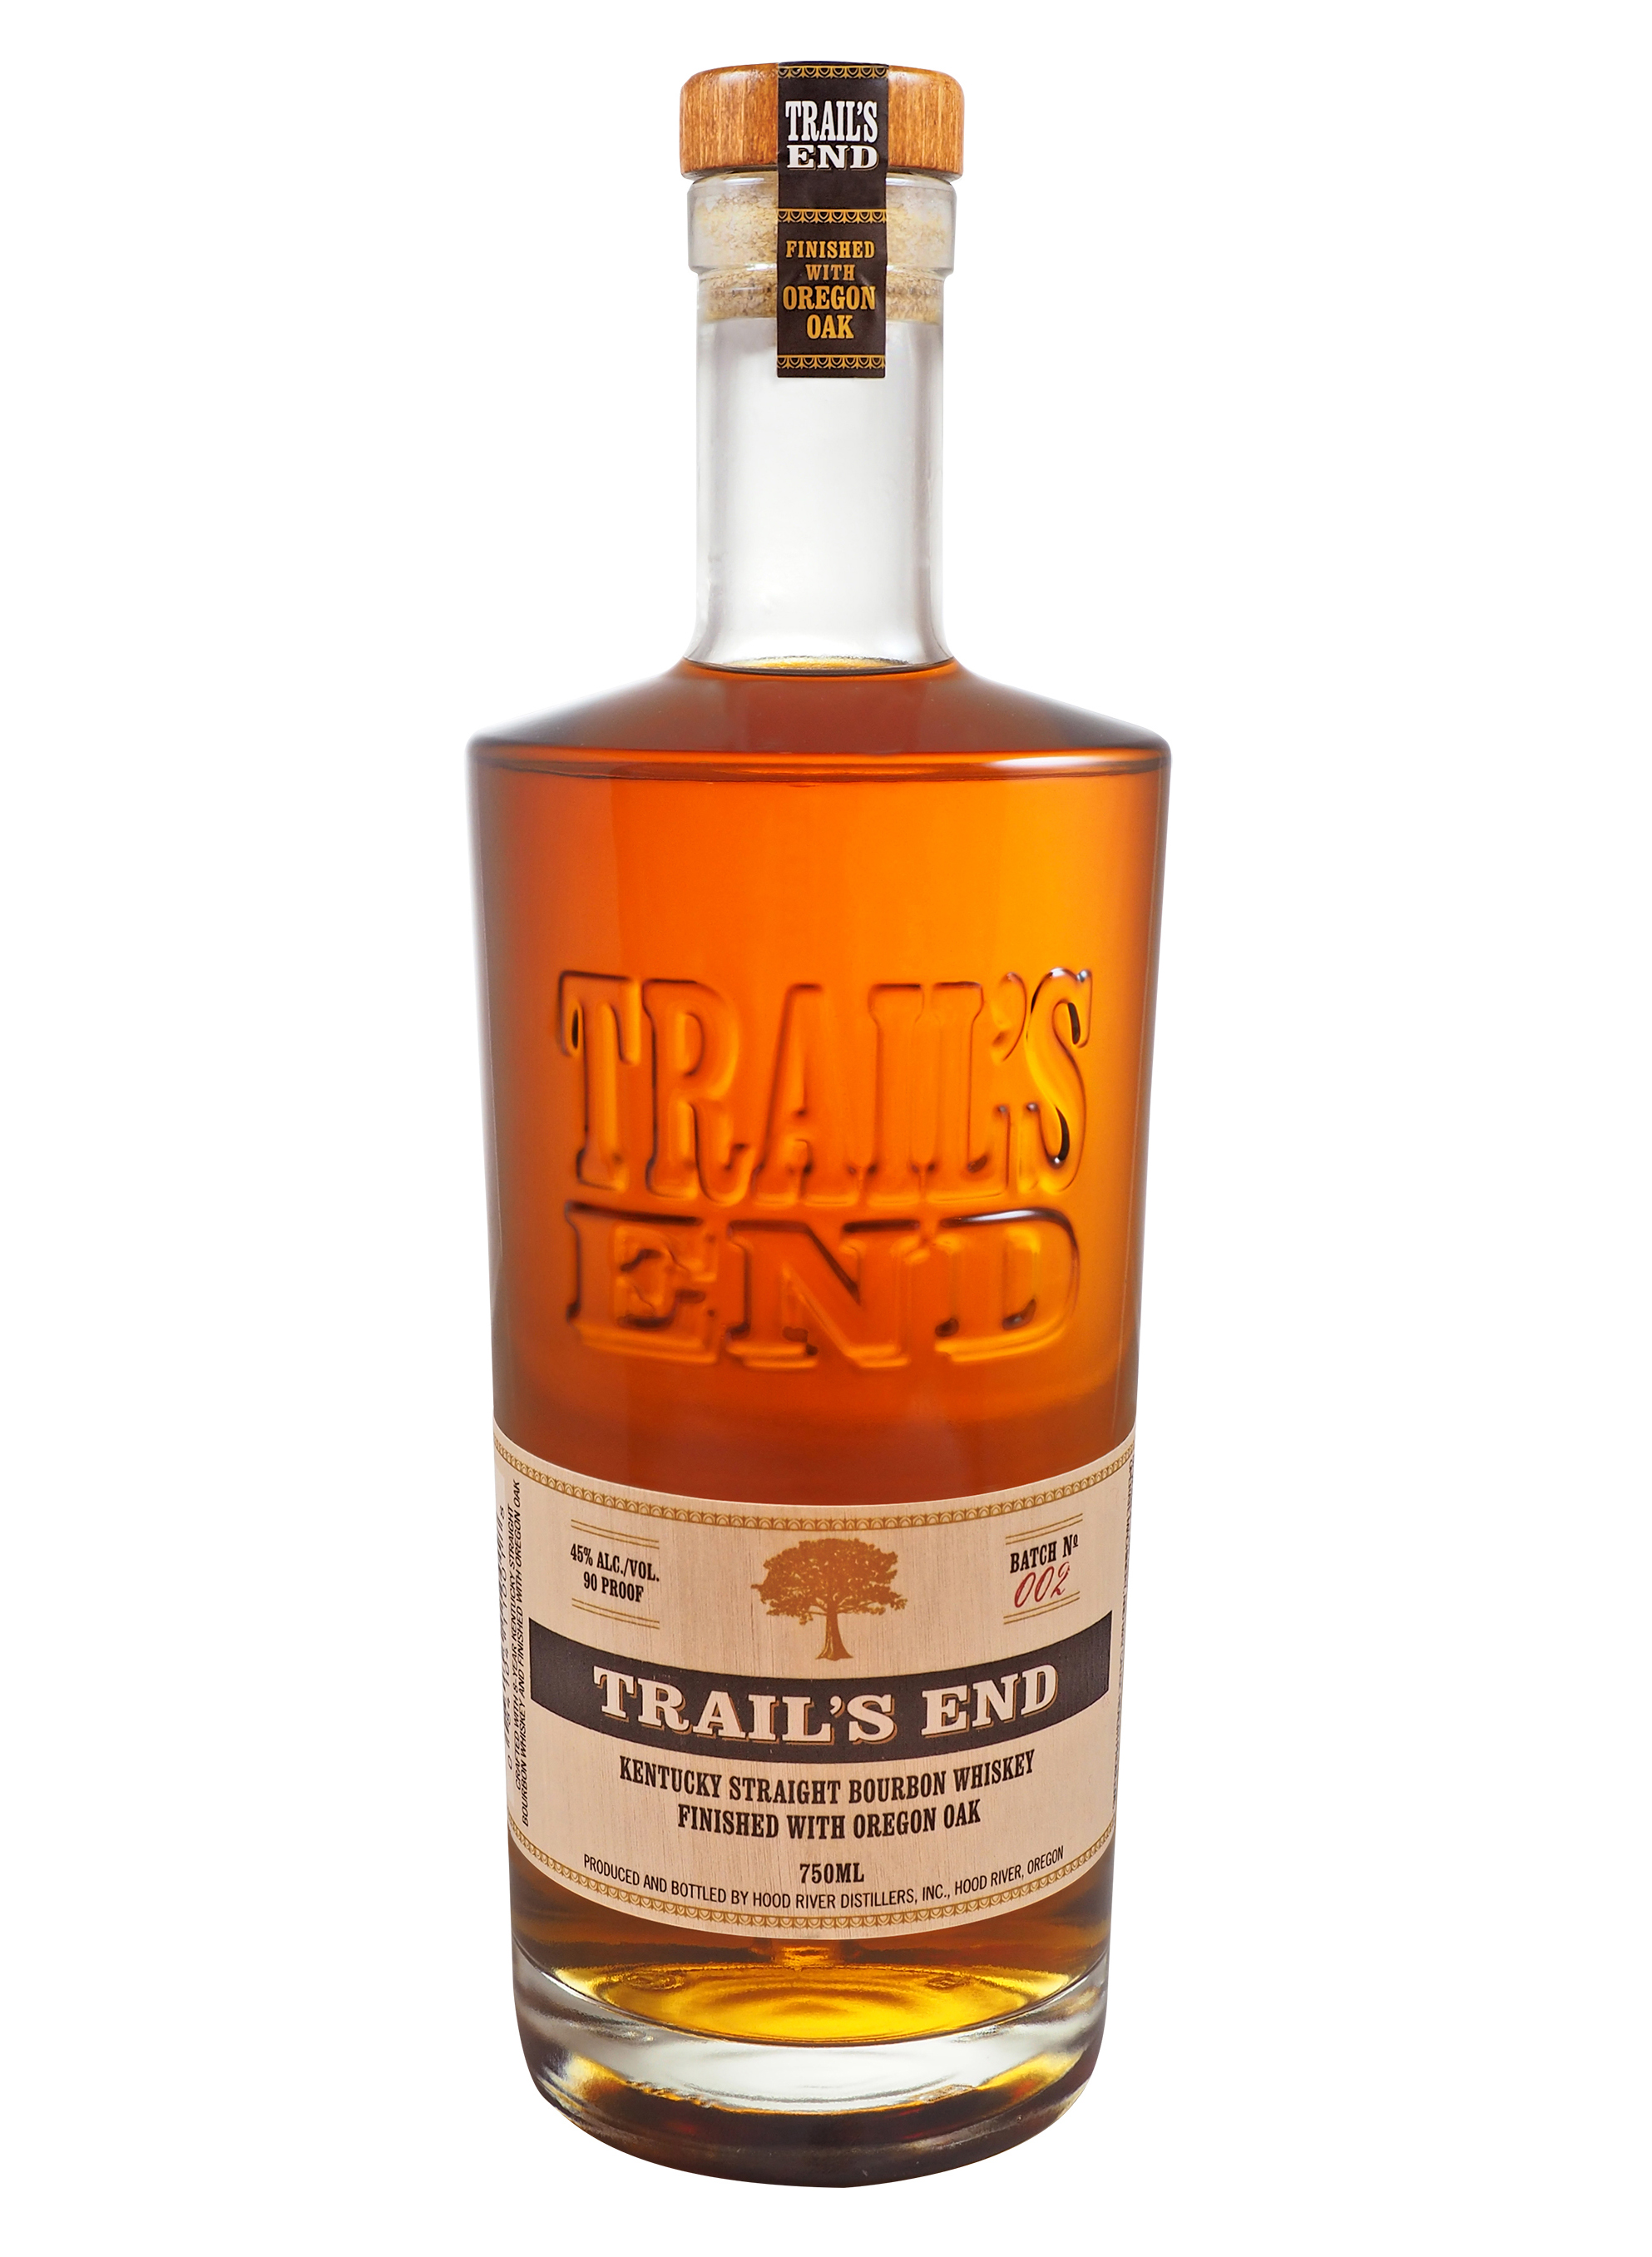 TRAIL'S END  AROMA  Rich, nutty spice and string tannings  TASTE  Creamy crème brulee and caramelized plantain. Notes of walnut, hazelnut, and nutmeg stand out  FINISH  Dry and spicy without astringency or sourness. Warm finish with a faint sweetness